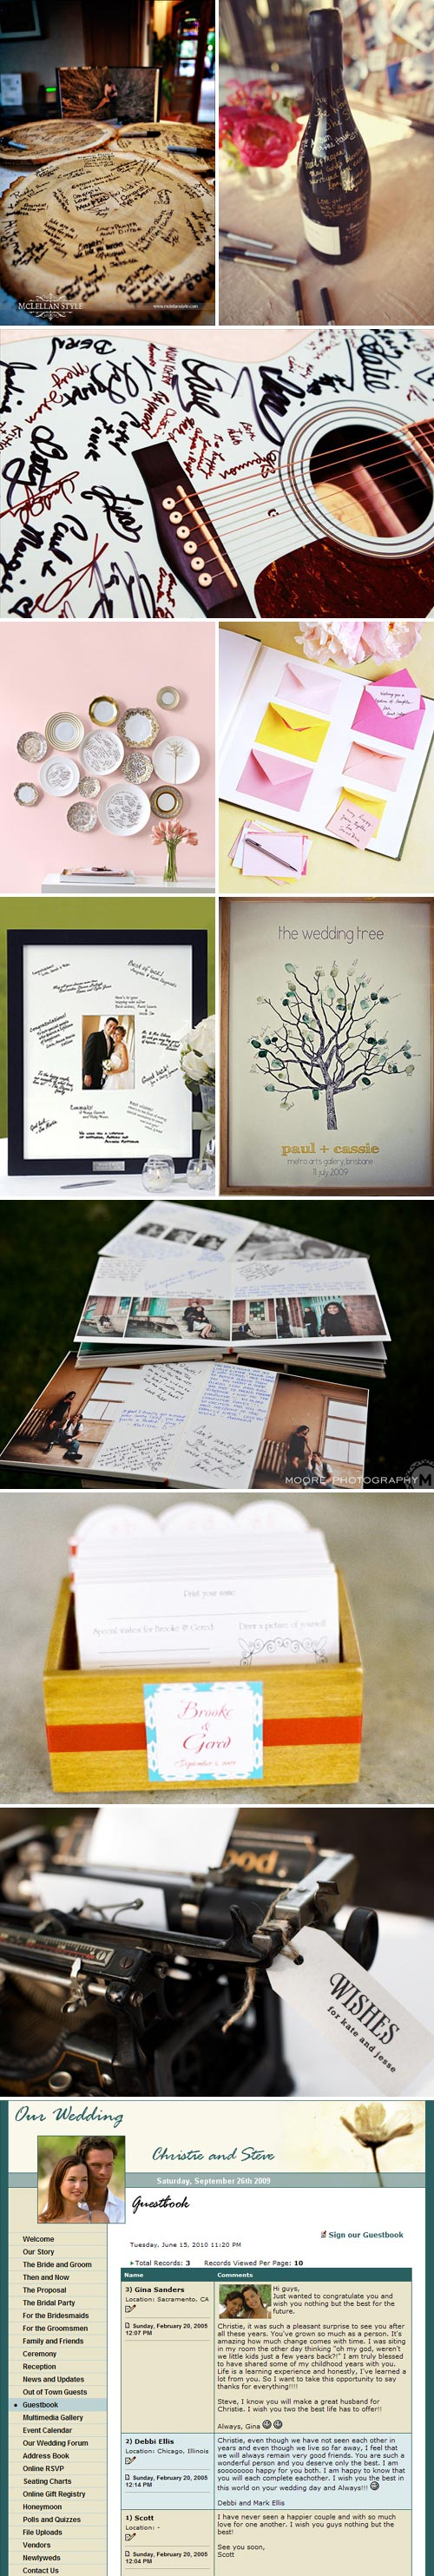 alternative-wedding-guestbook-ideas